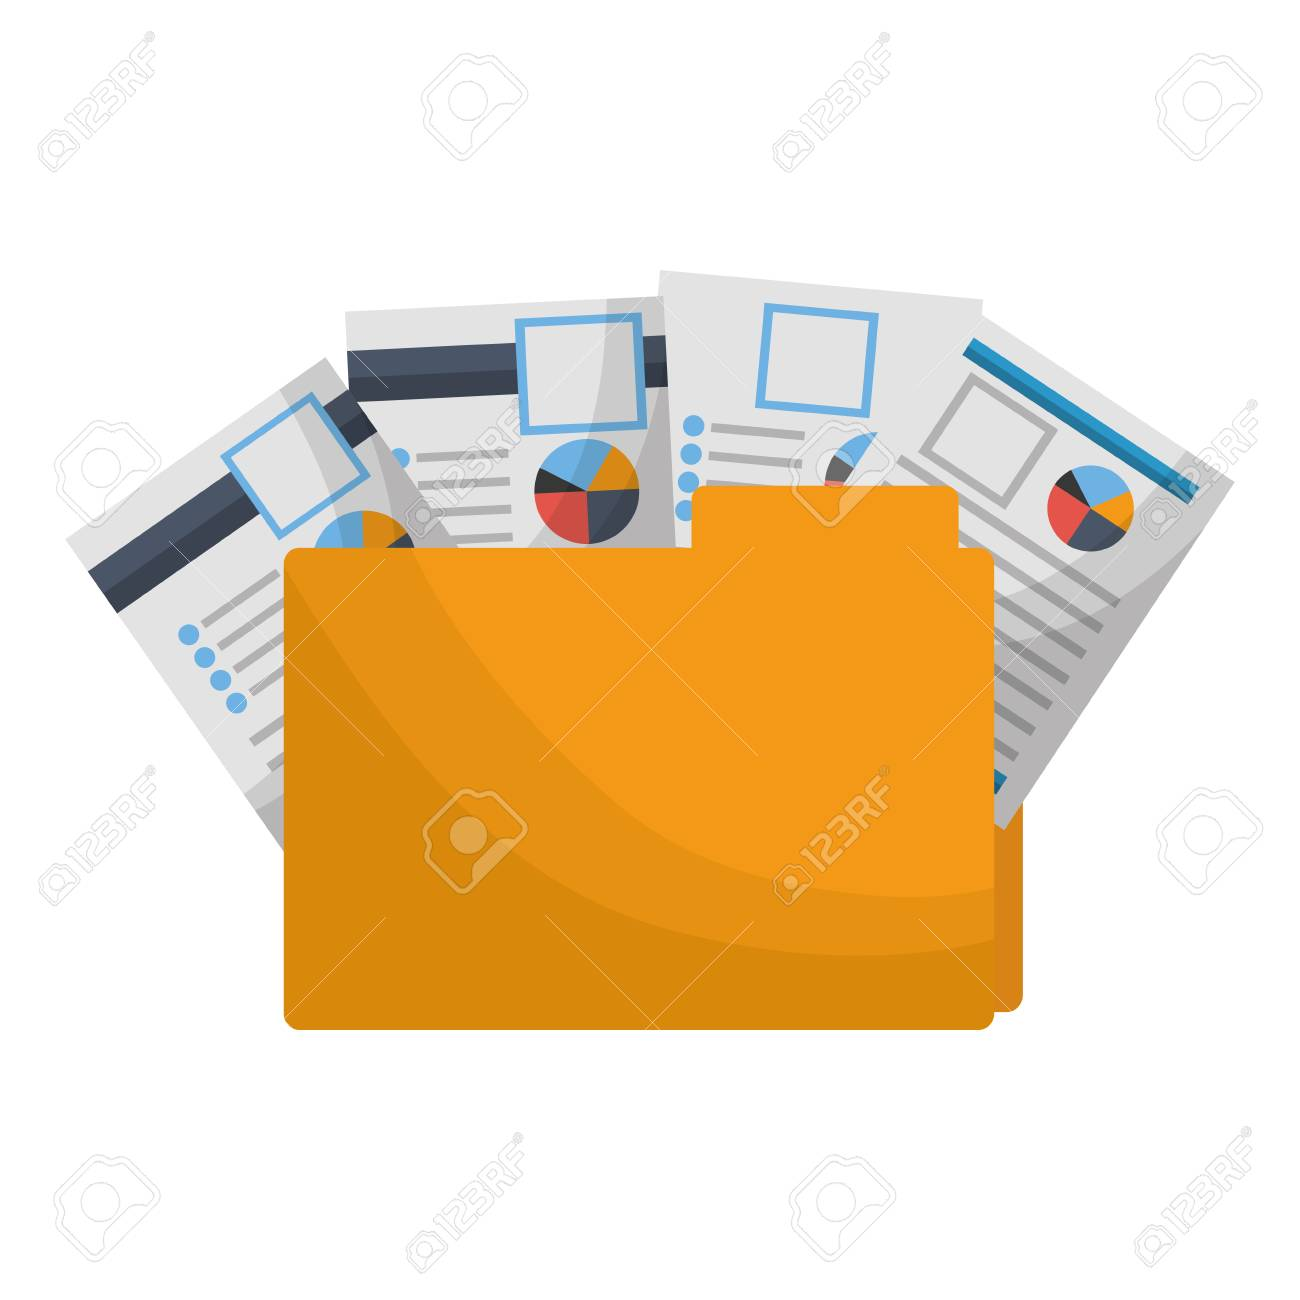 office folder file documents paper reports vector illustration - 112389548